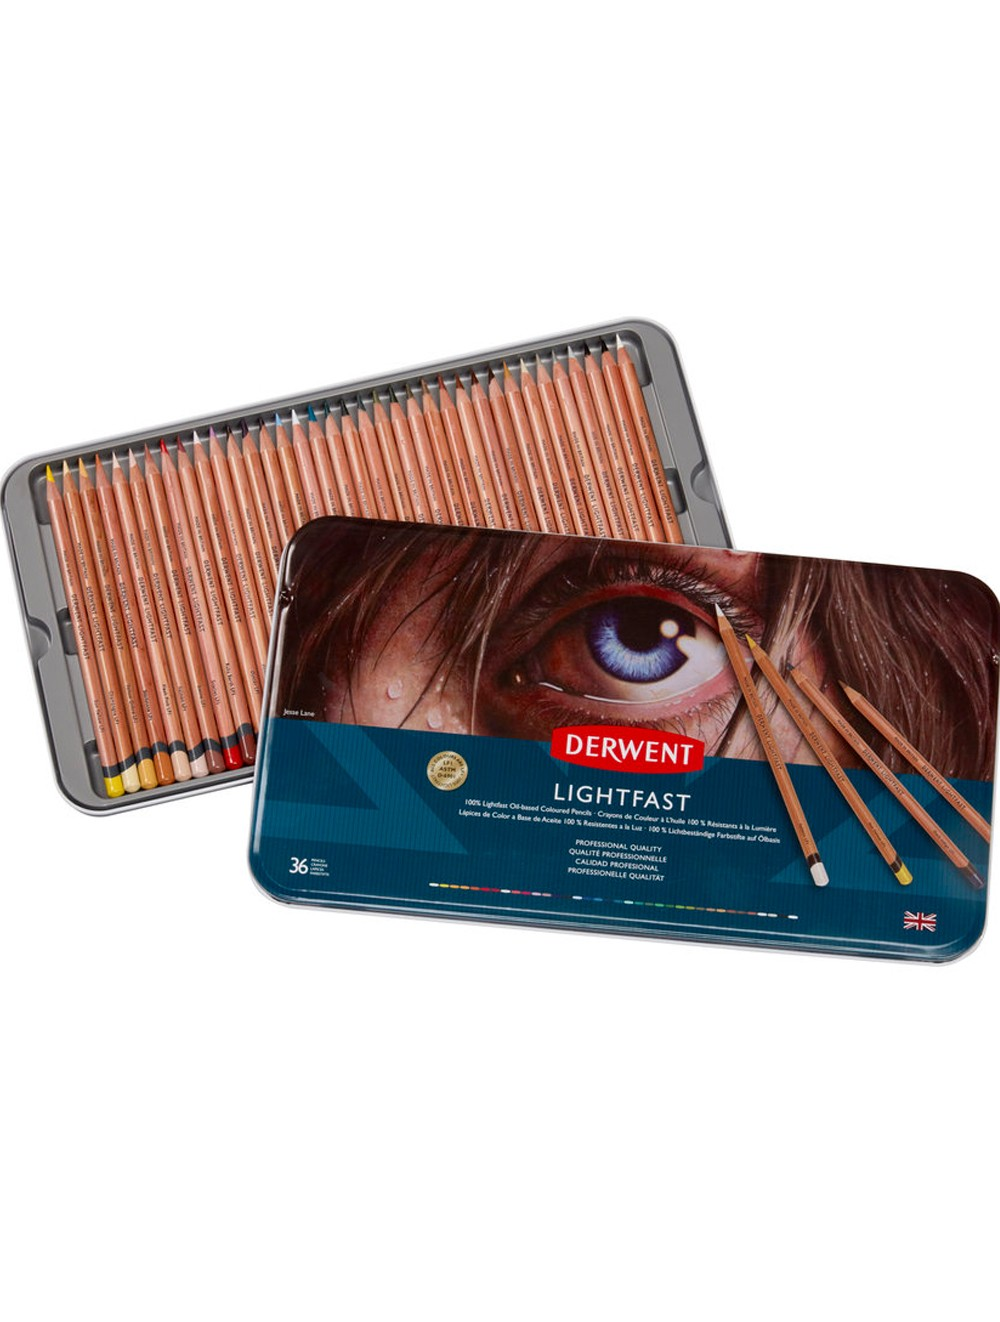 DERWENT LIGHTFAST PENCILS TIN X36